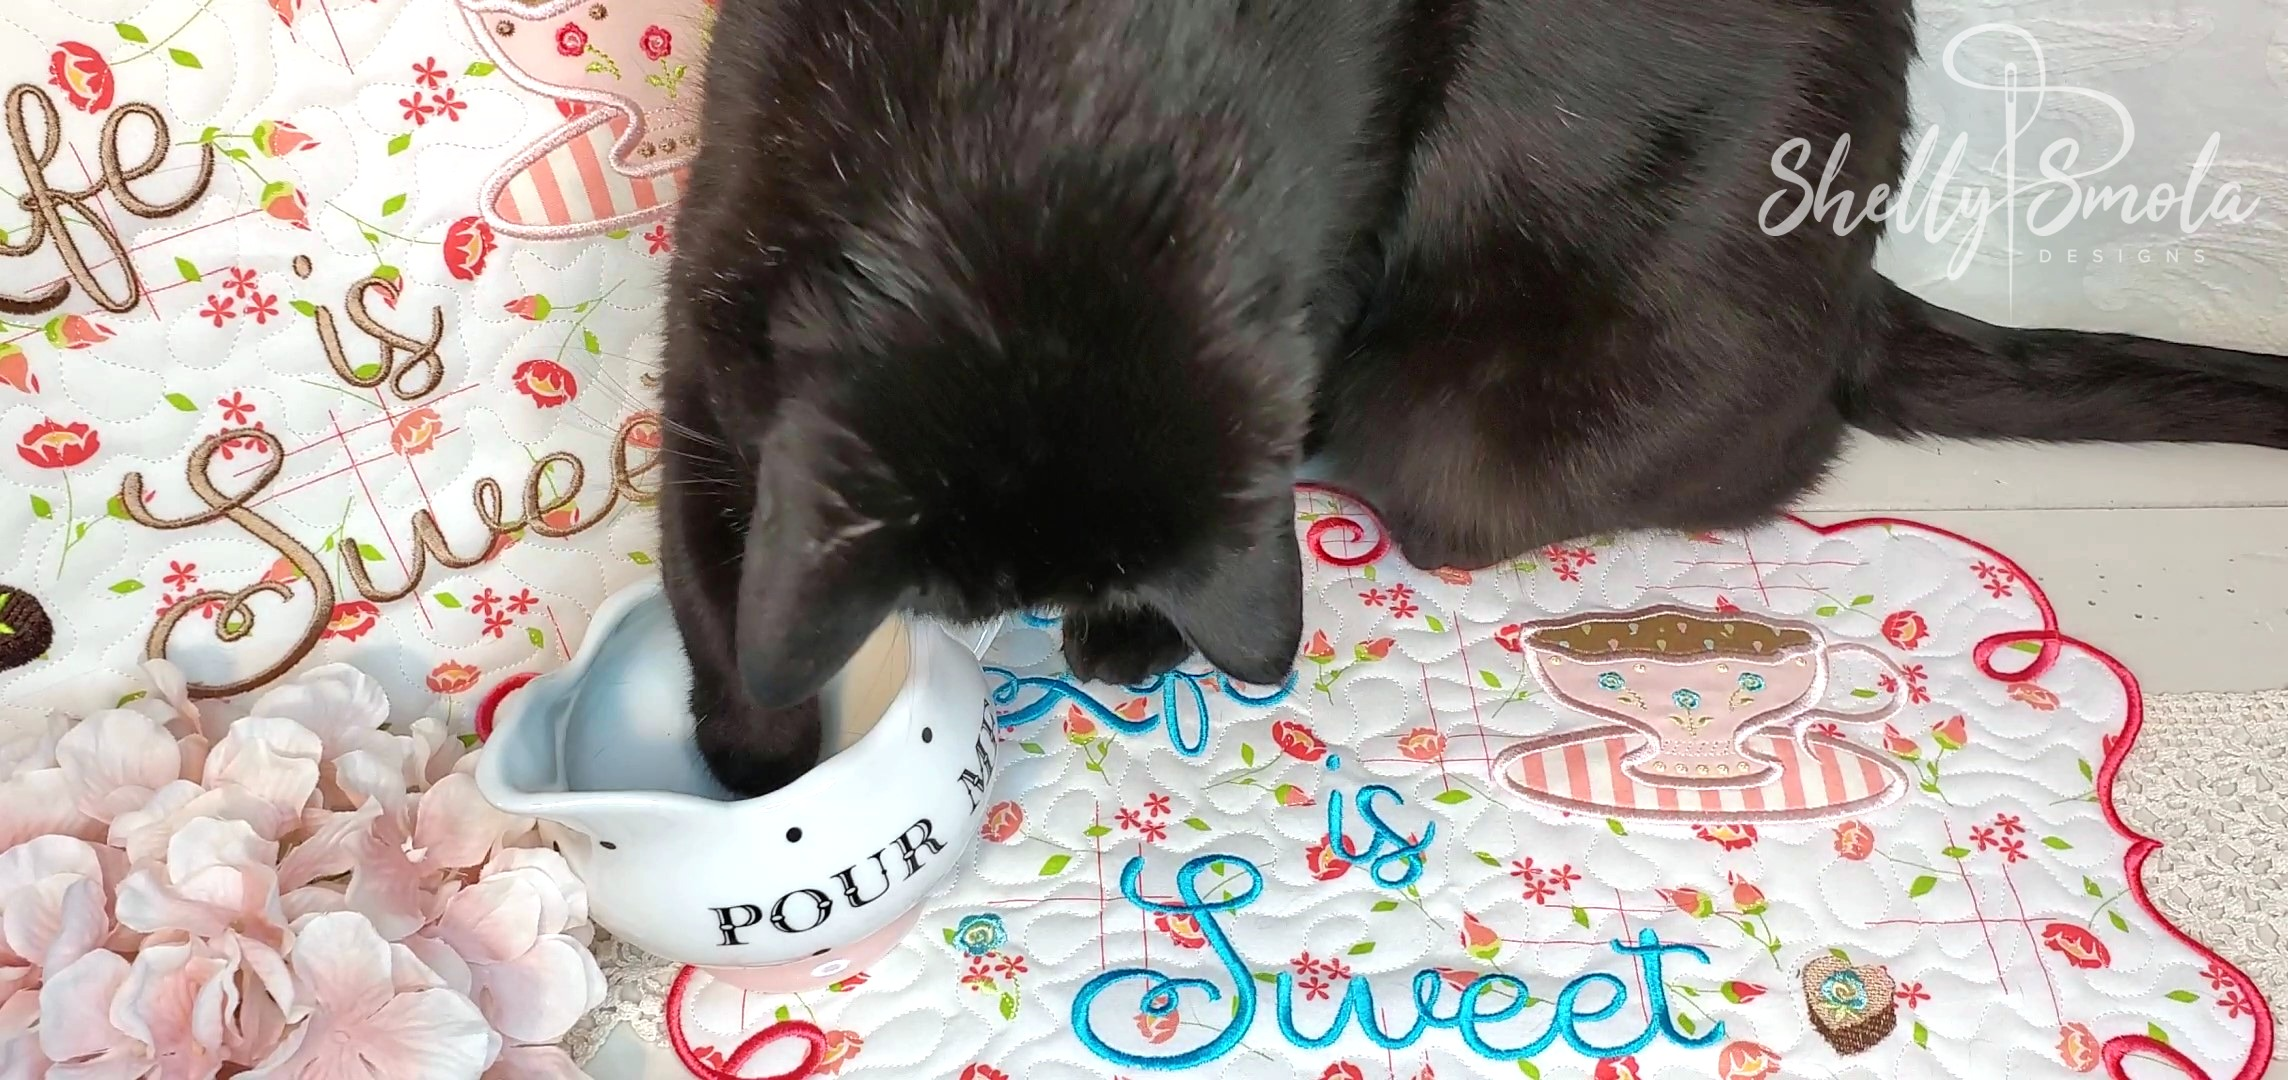 Life is Sweet Placemat and Spooky by Shelly Smola